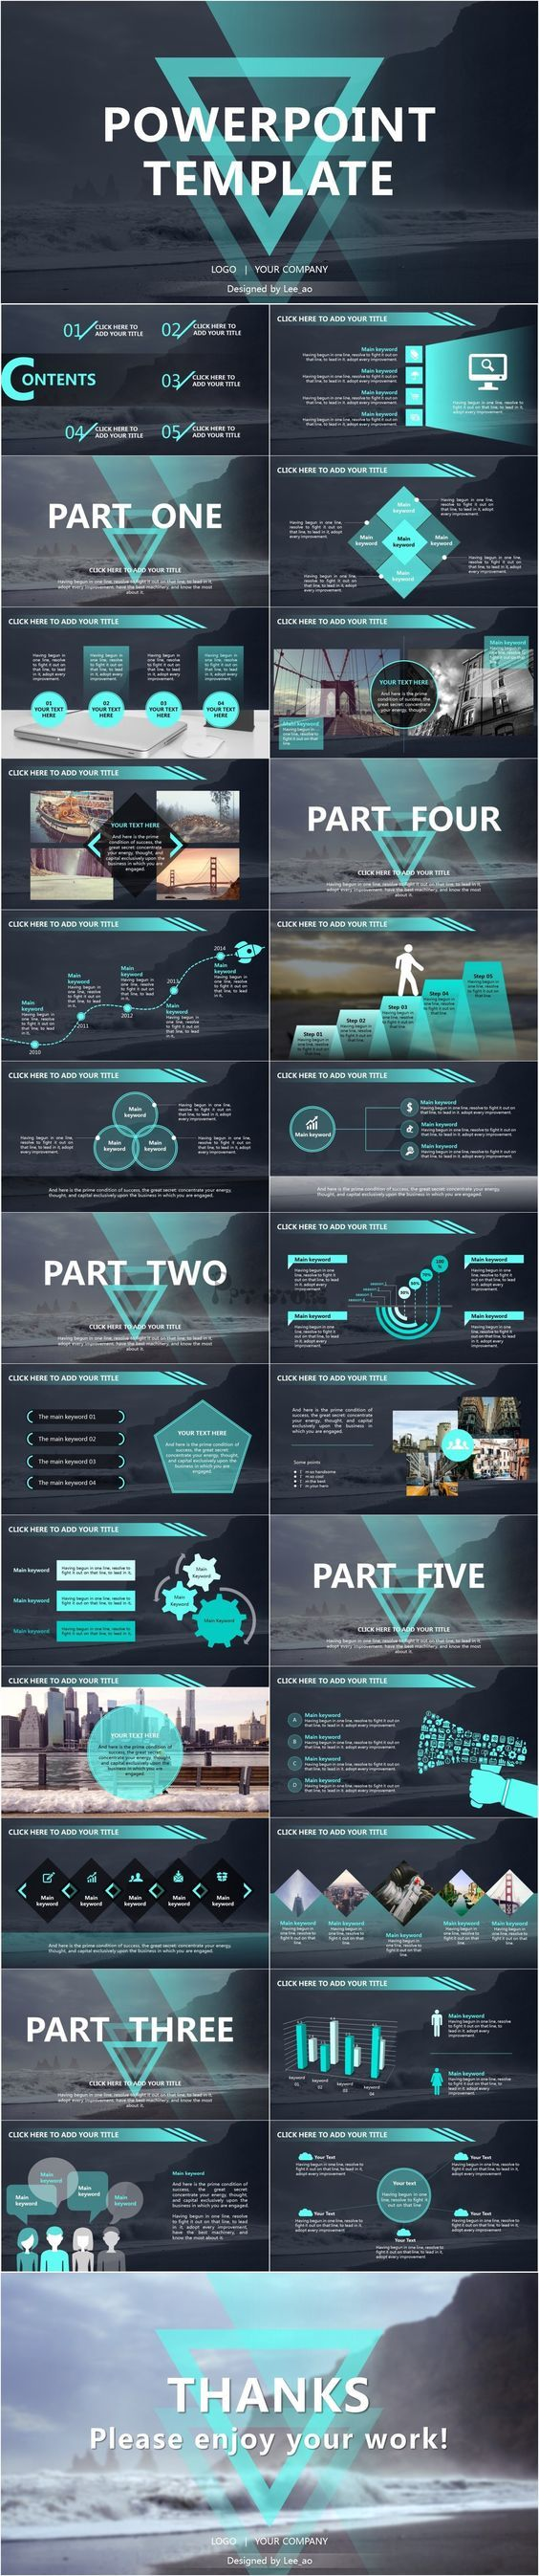 PowerPoint template,download:http://www.pptstore.net/shangwu_ppt/12173.html: